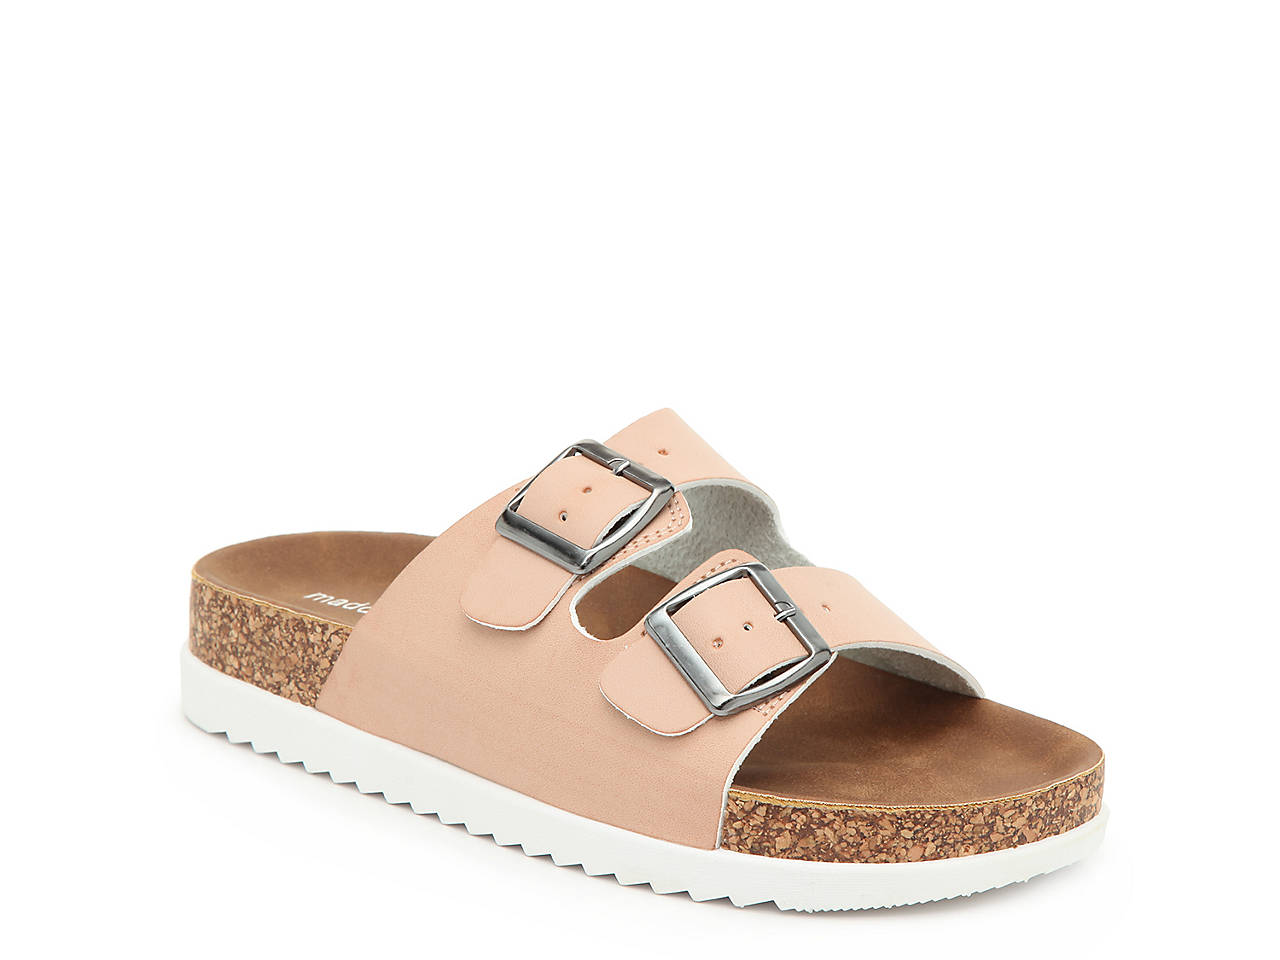 c390a08eeaa6 Madden Girl Goldie Sandal Women's Shoes | DSW